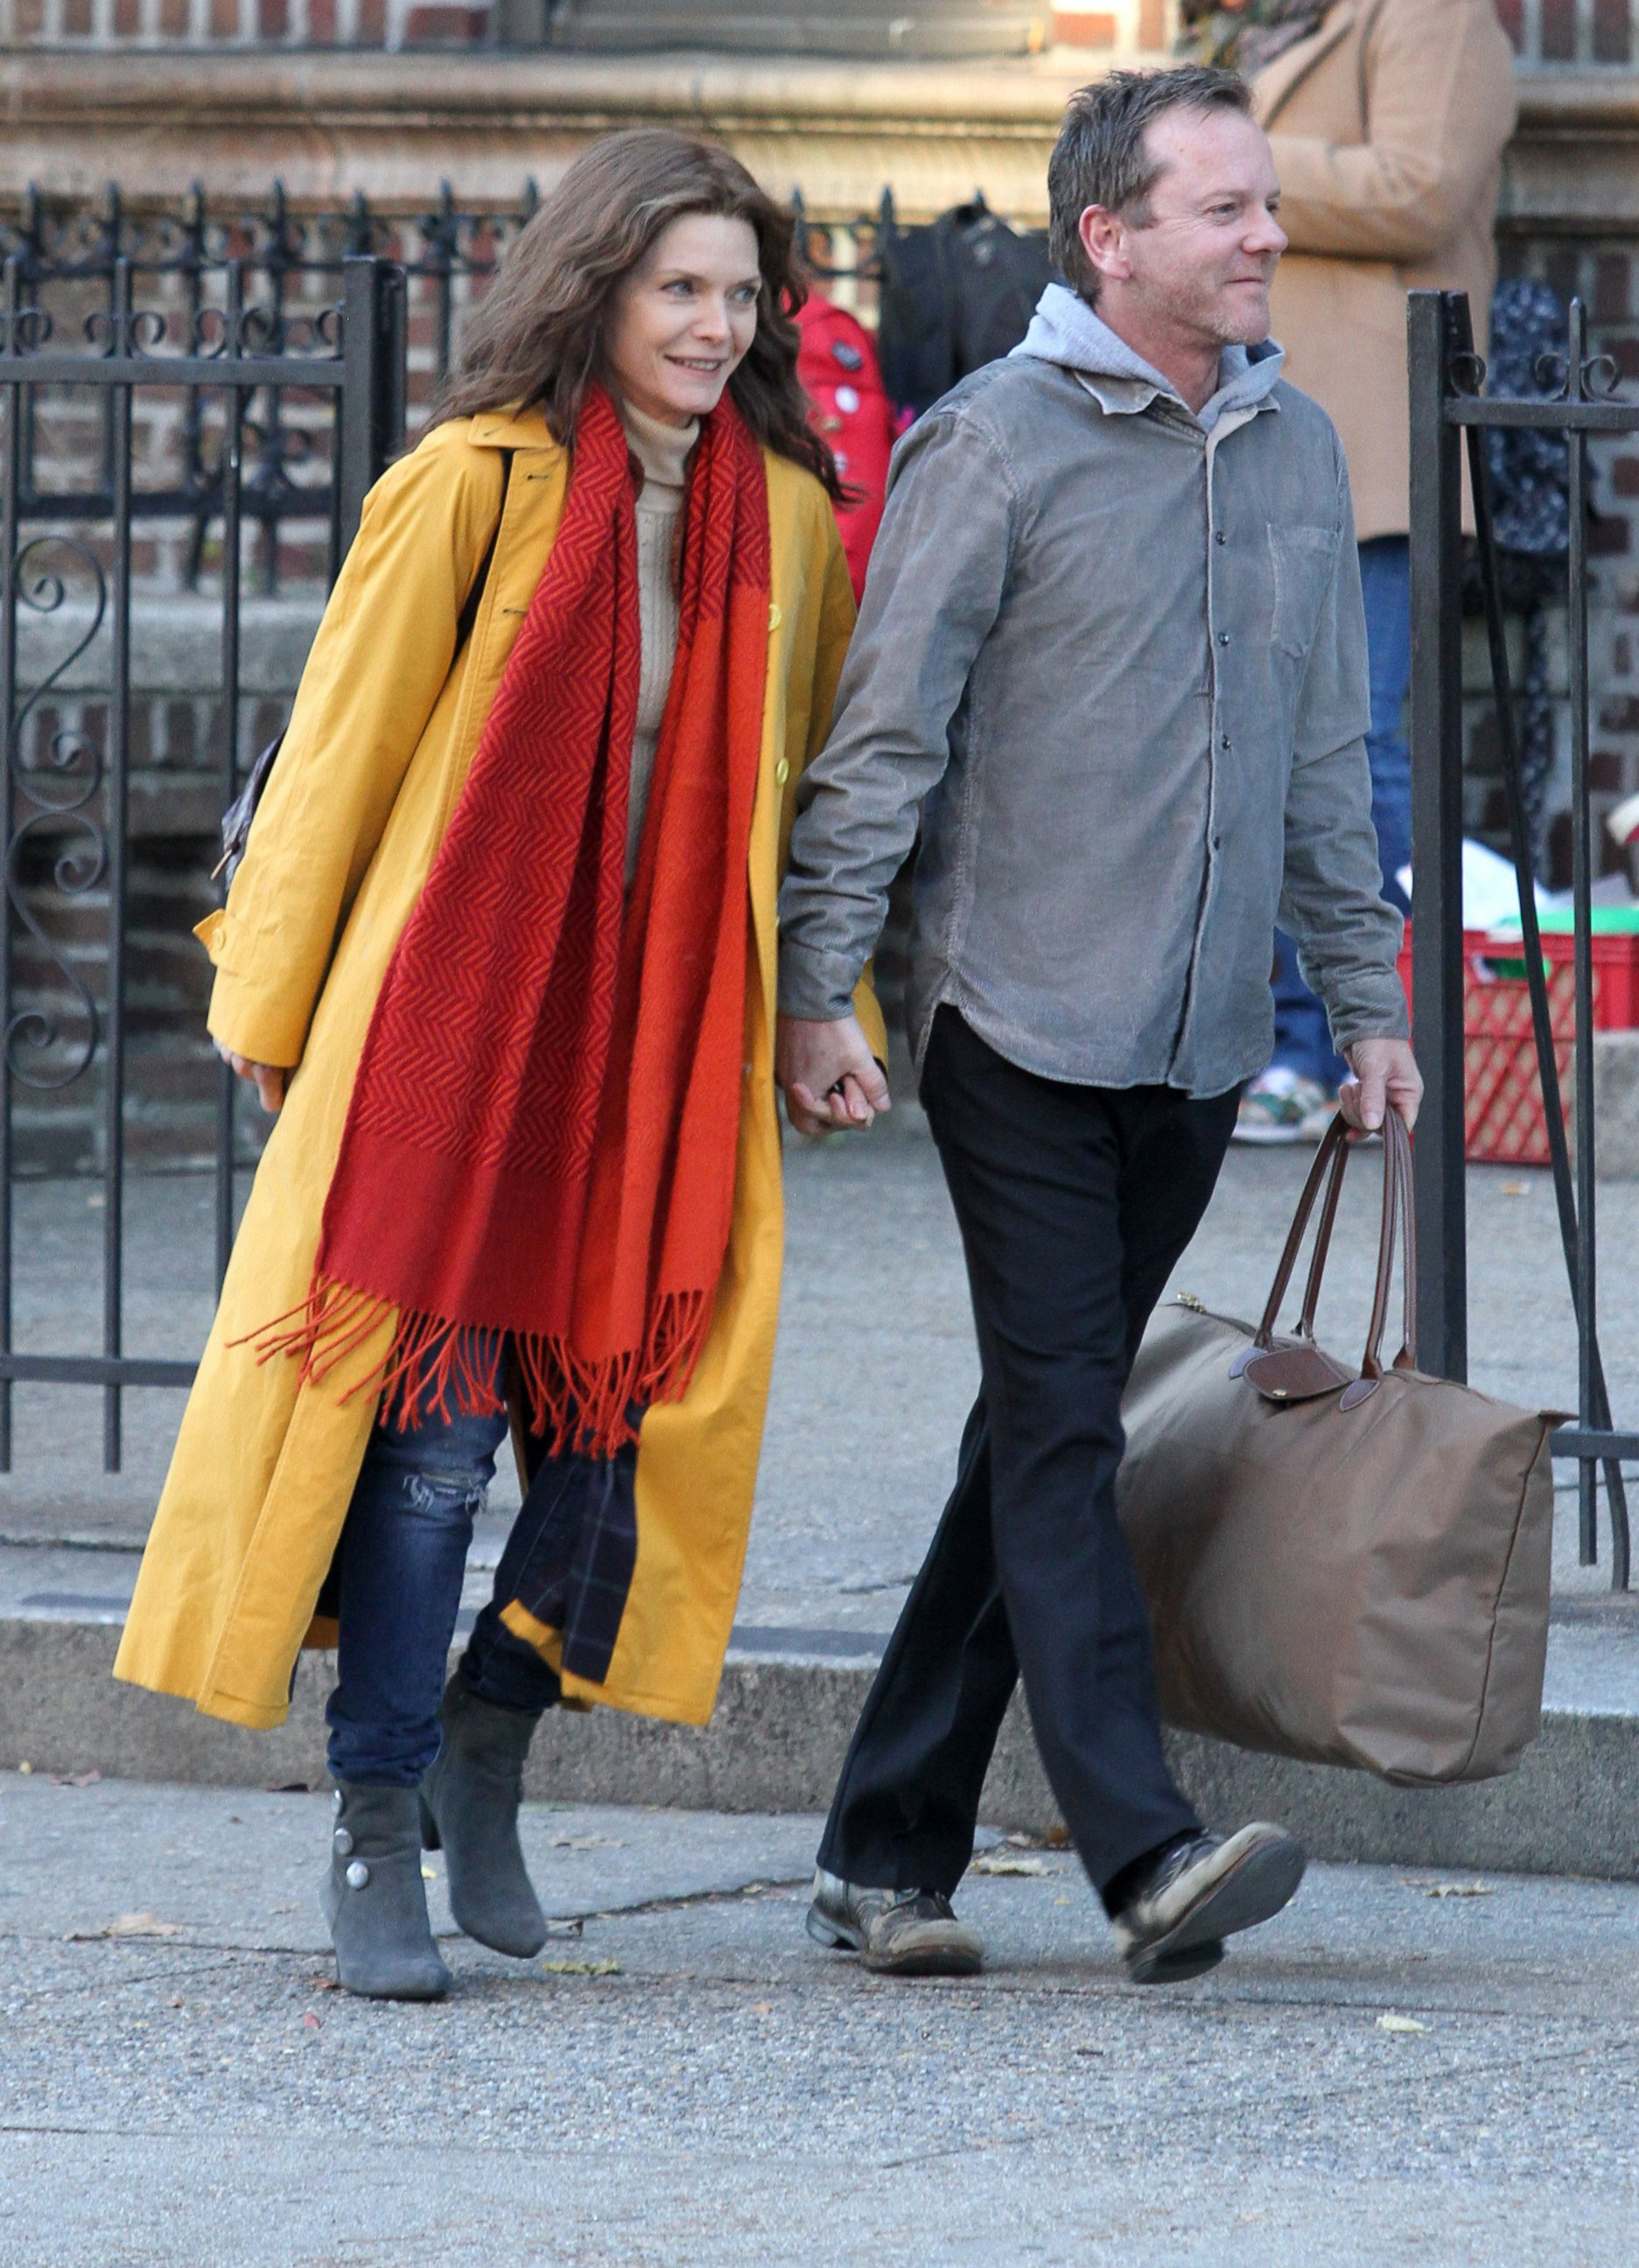 Michelle Pfeiffer and Kiefer Sutherland Hold Hands on Set